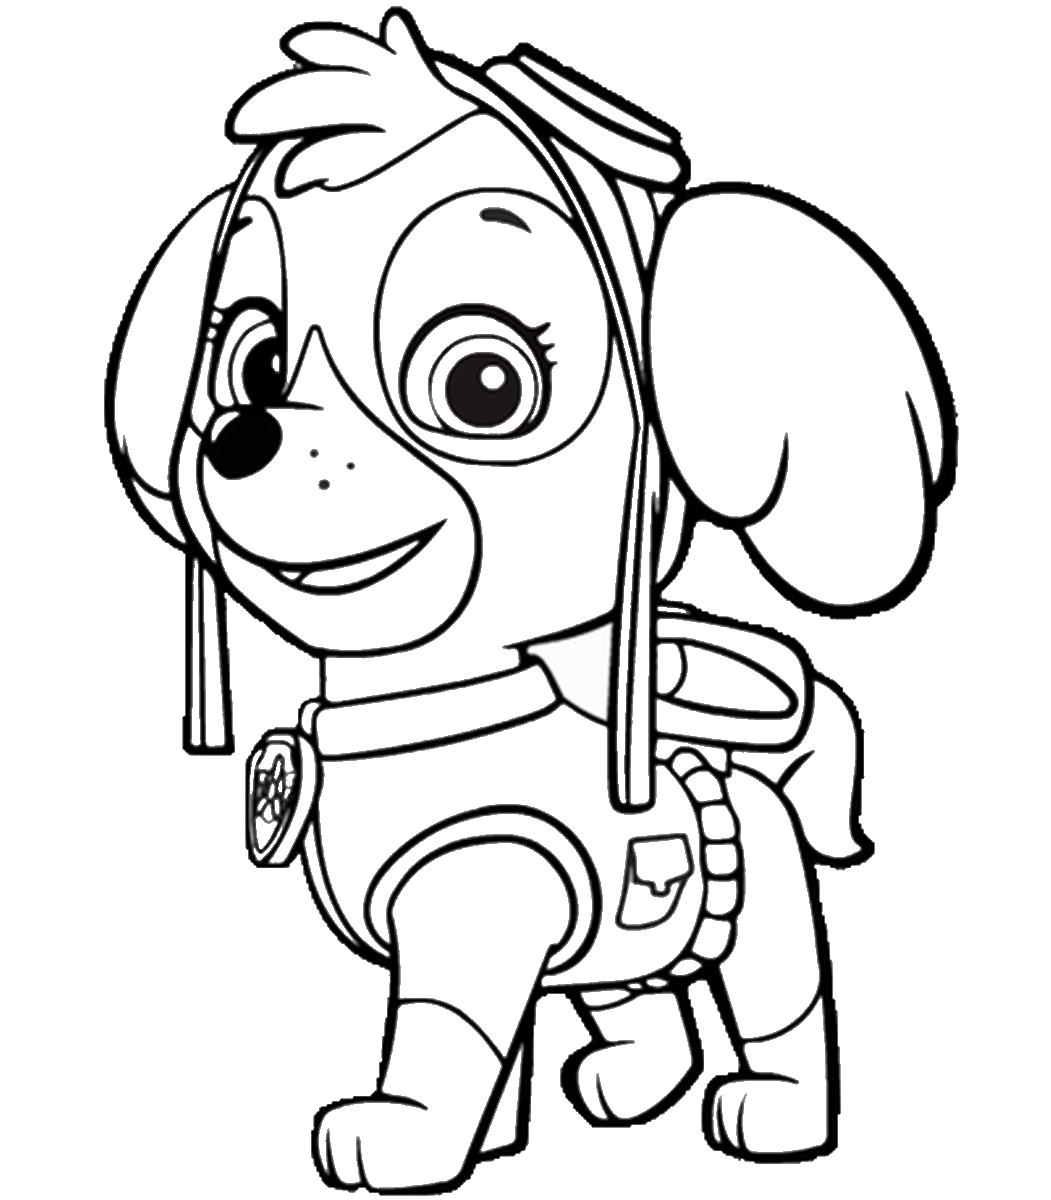 paw patrol coloring pages paw patrol coloring pages birthday printable patrol paw coloring pages